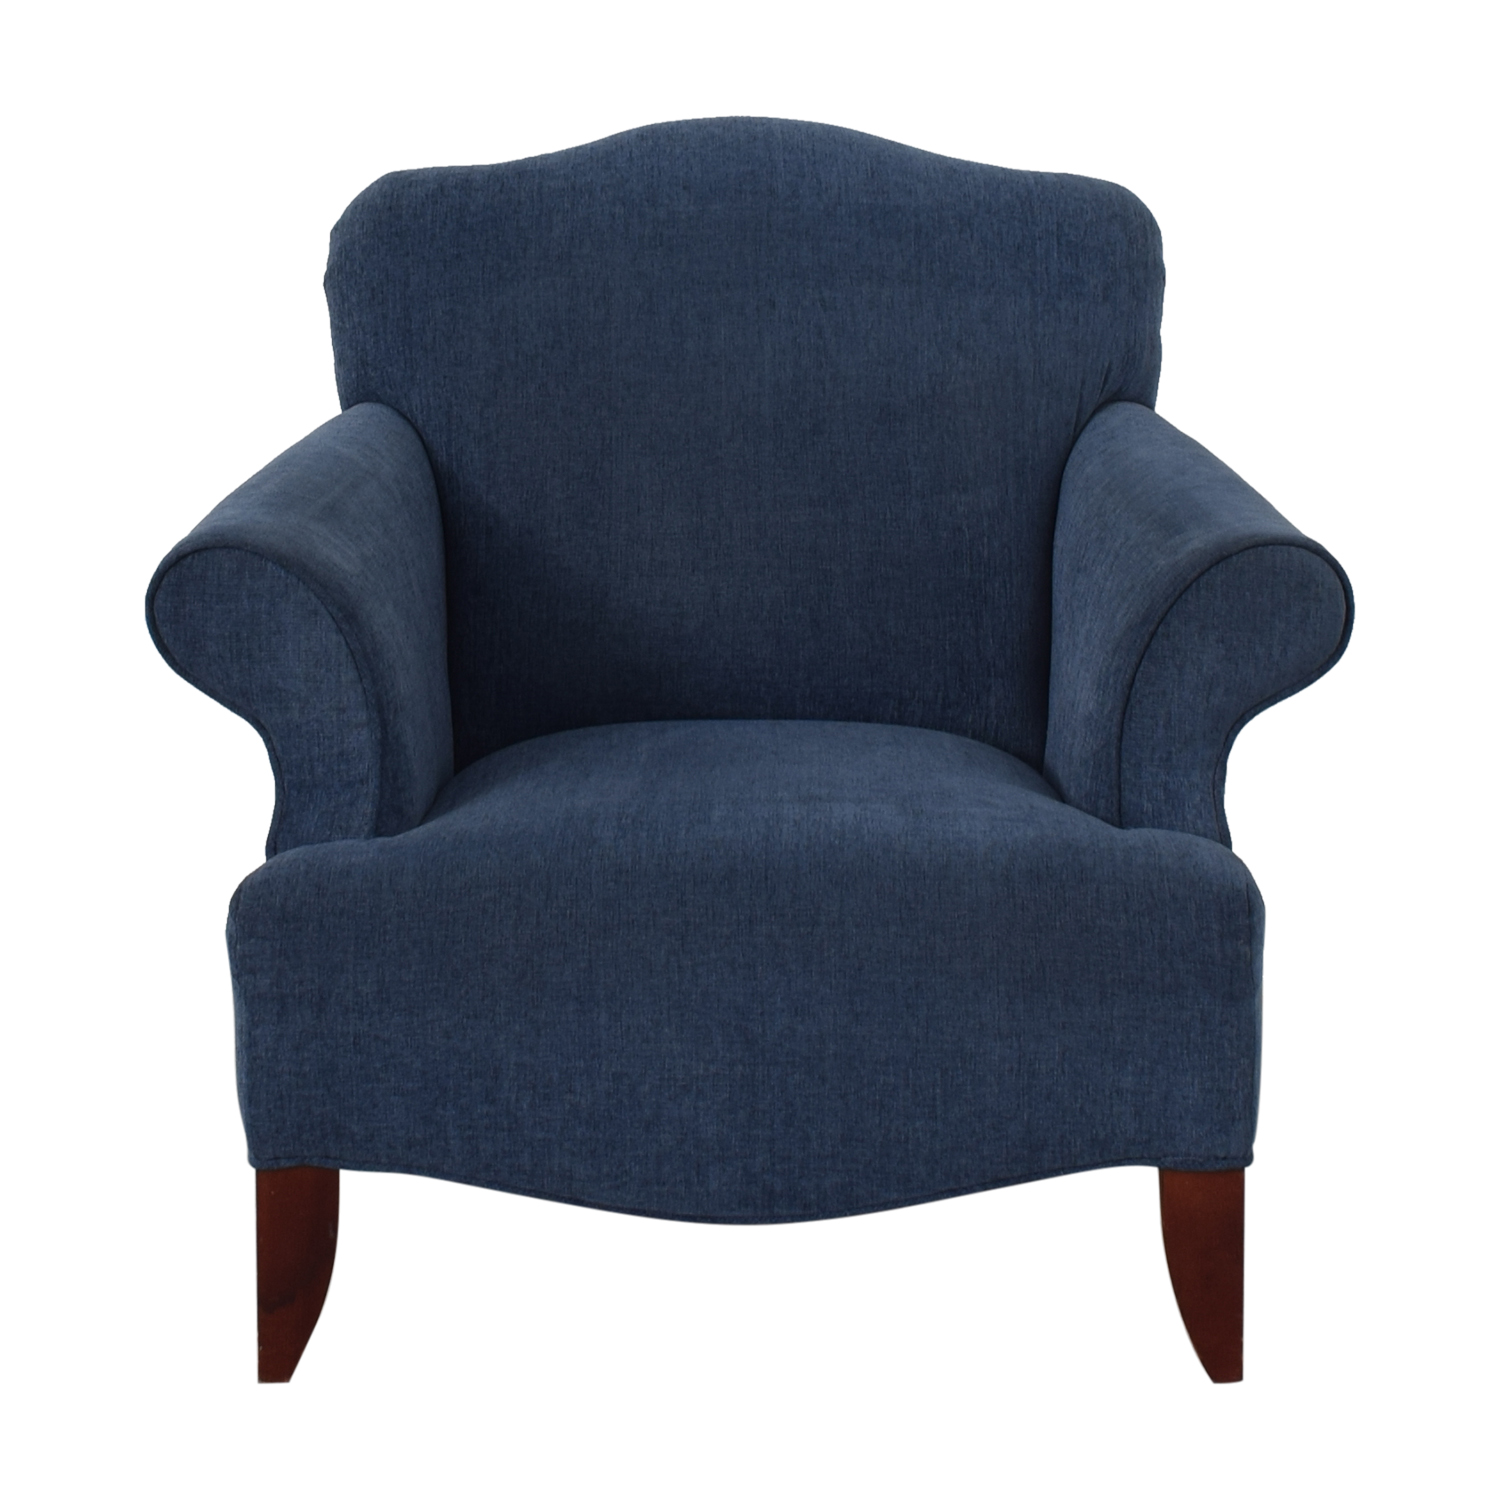 buy Blue Upholstered Arm Chair